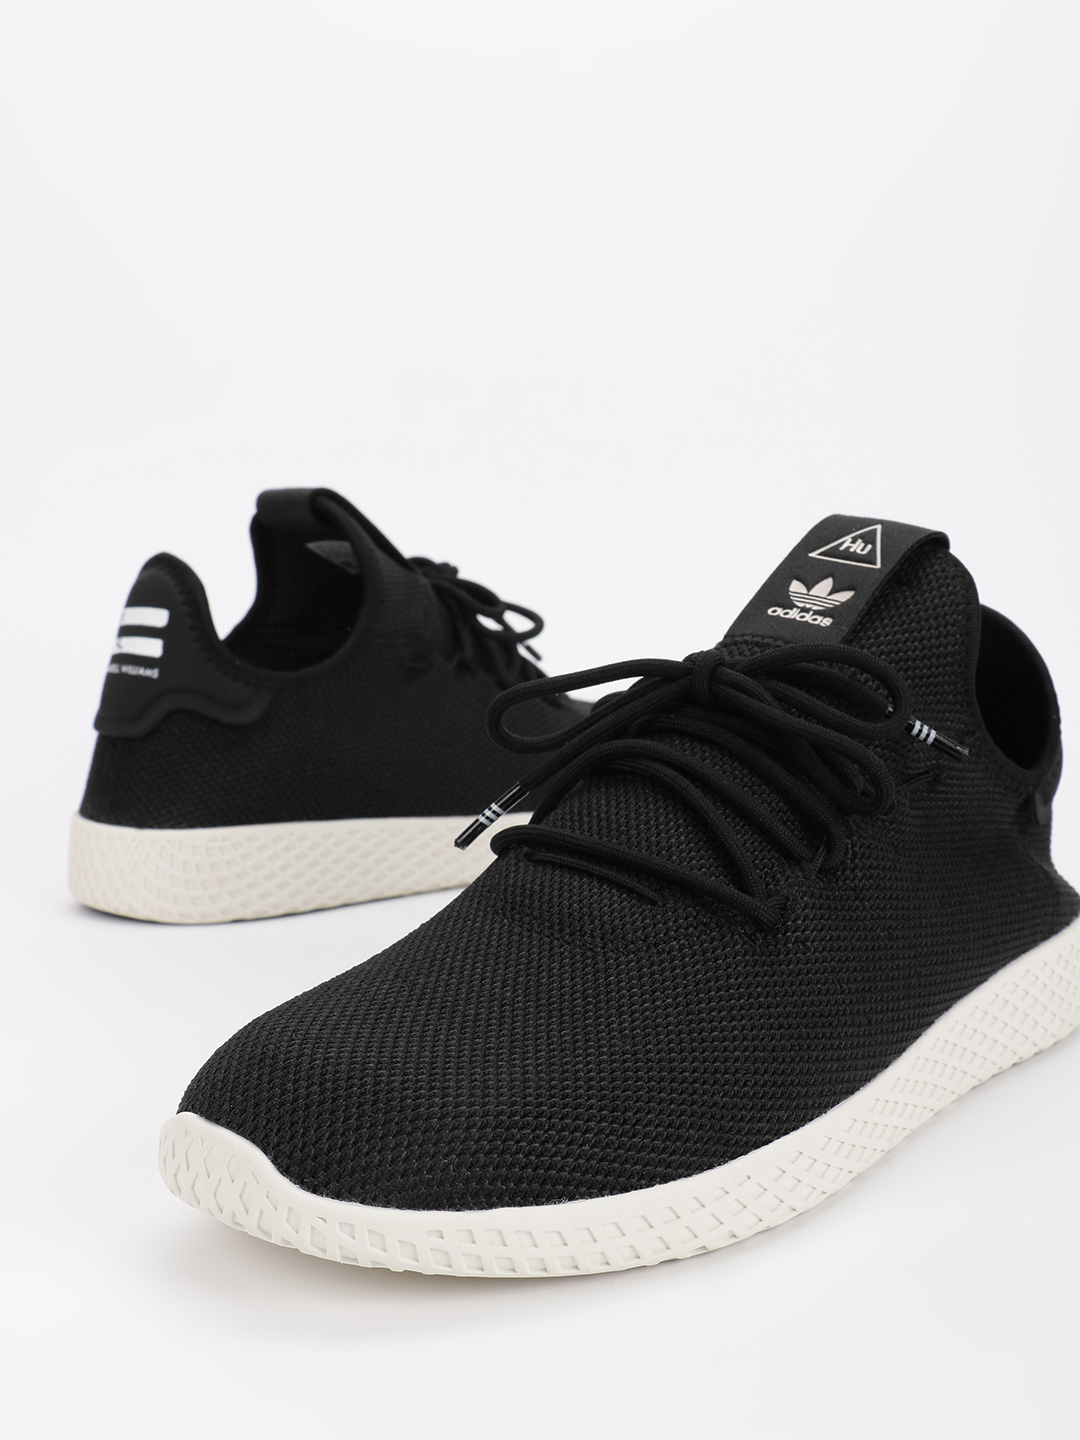 Adidas Originals Black Pharrell Williams Tennis HU Shoes 1